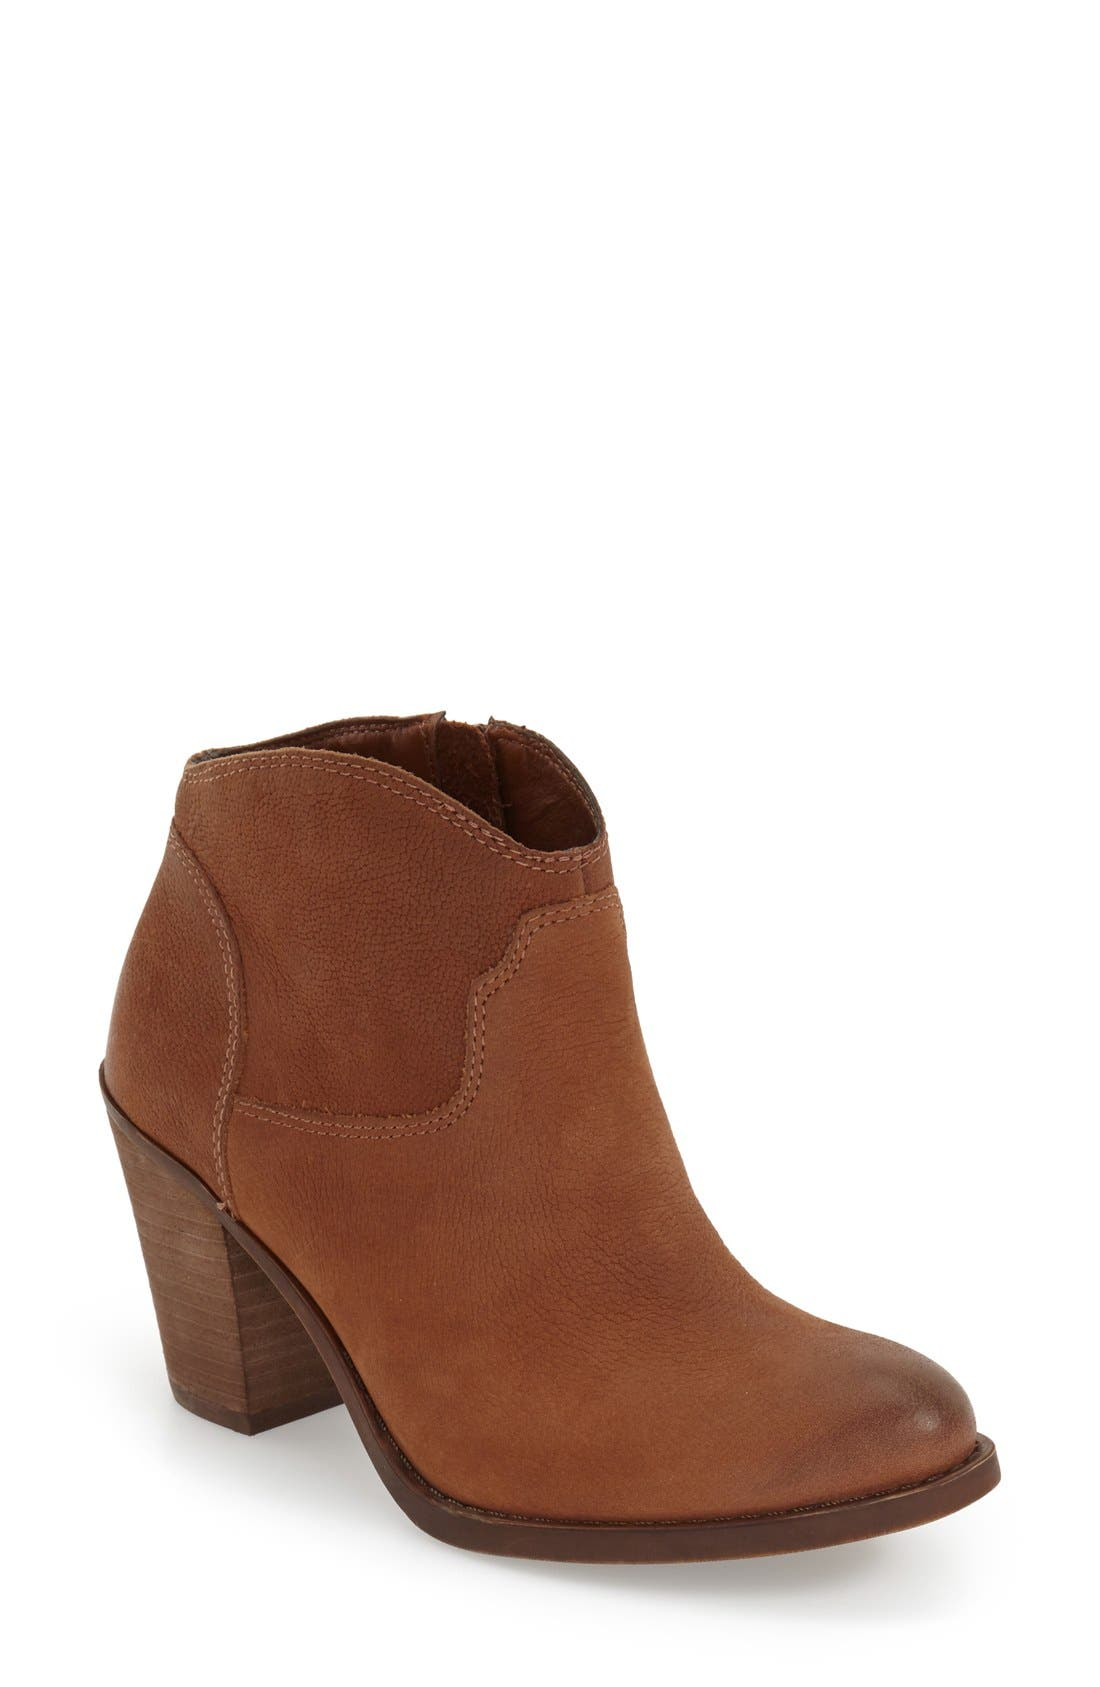 'Eller' Bootie,                             Main thumbnail 1, color,                             Toffee Leather